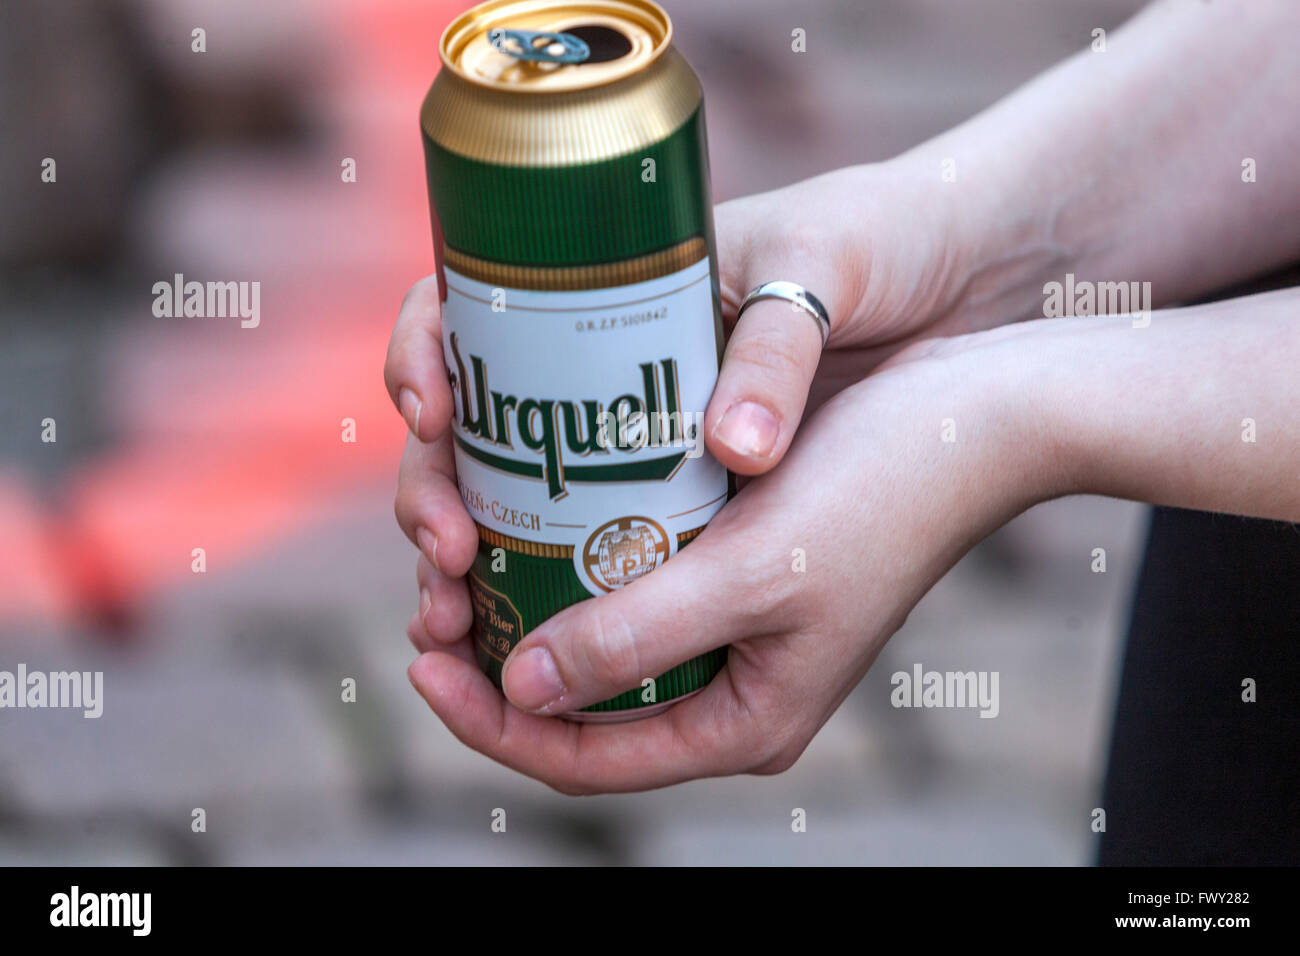 The woman is holding a can of beer Pilsner Urquell - Stock Image